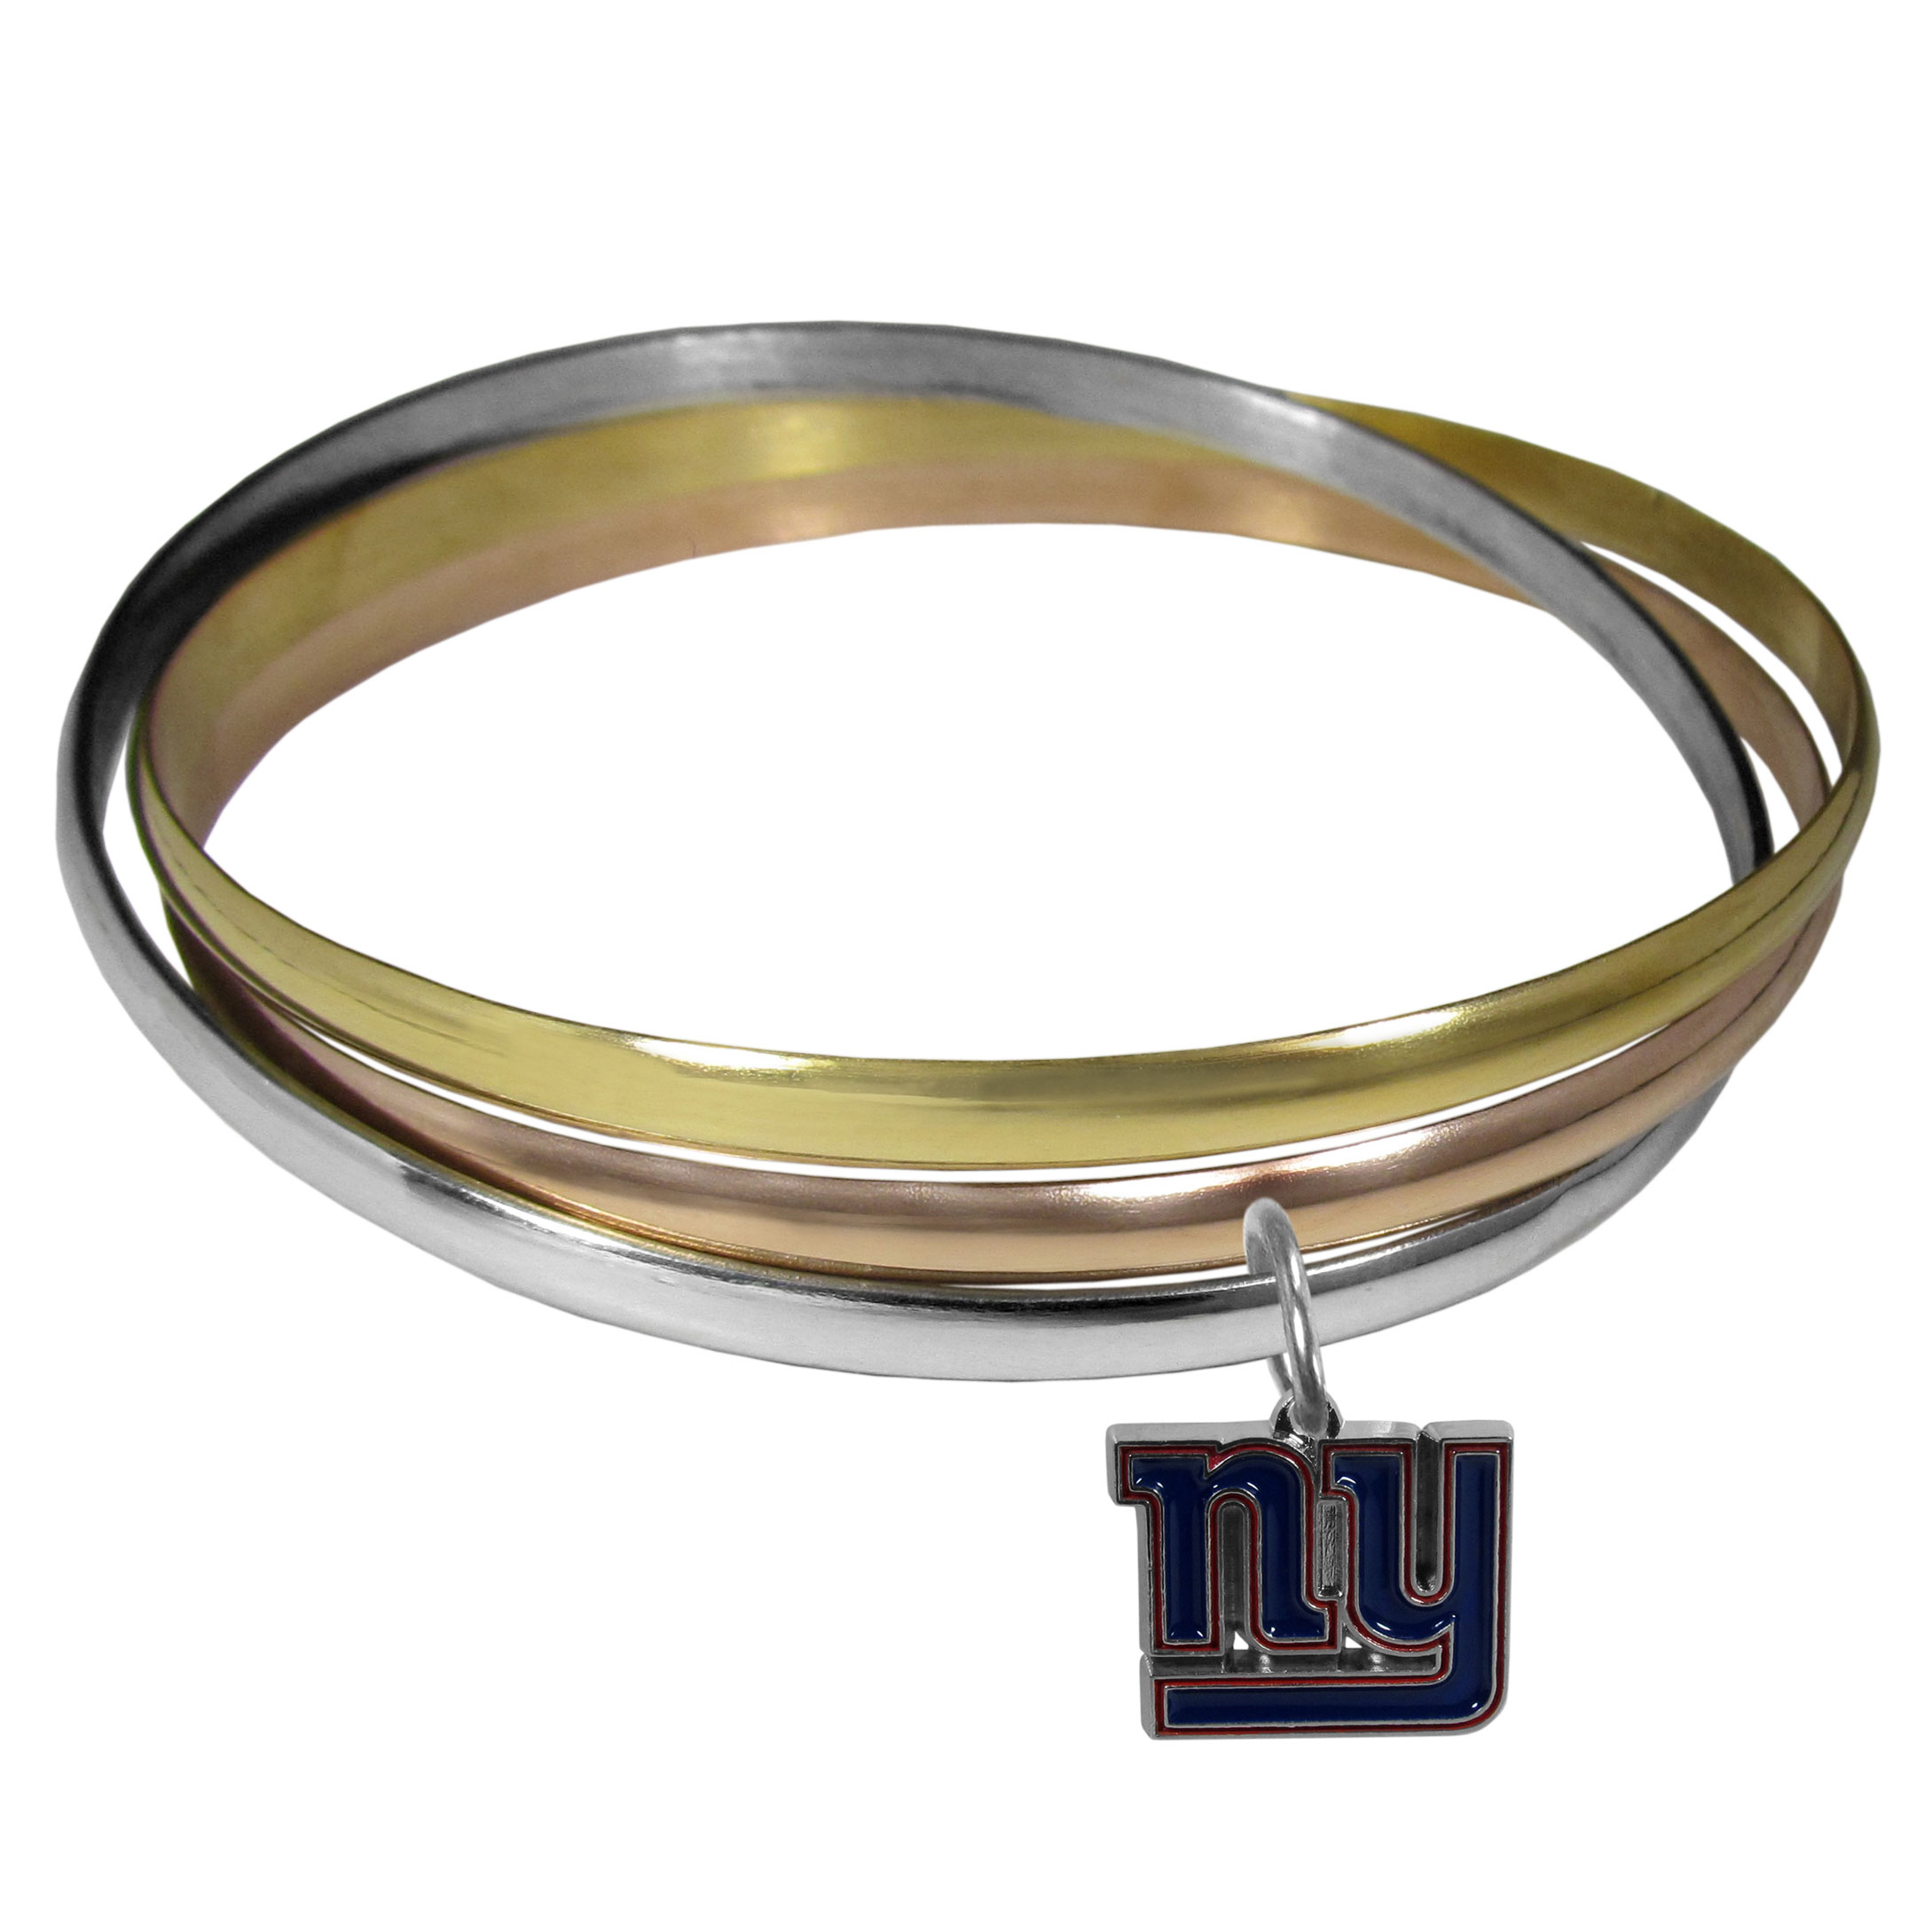 New York Giants Tri-color Bangle Bracelet - These beautiful bangles come in a interlocking style and feature a fully cast New York Giants charm with enameled team colors. The bracelet has a silver toned bangle, gold tone bangle and brass toned bangle.